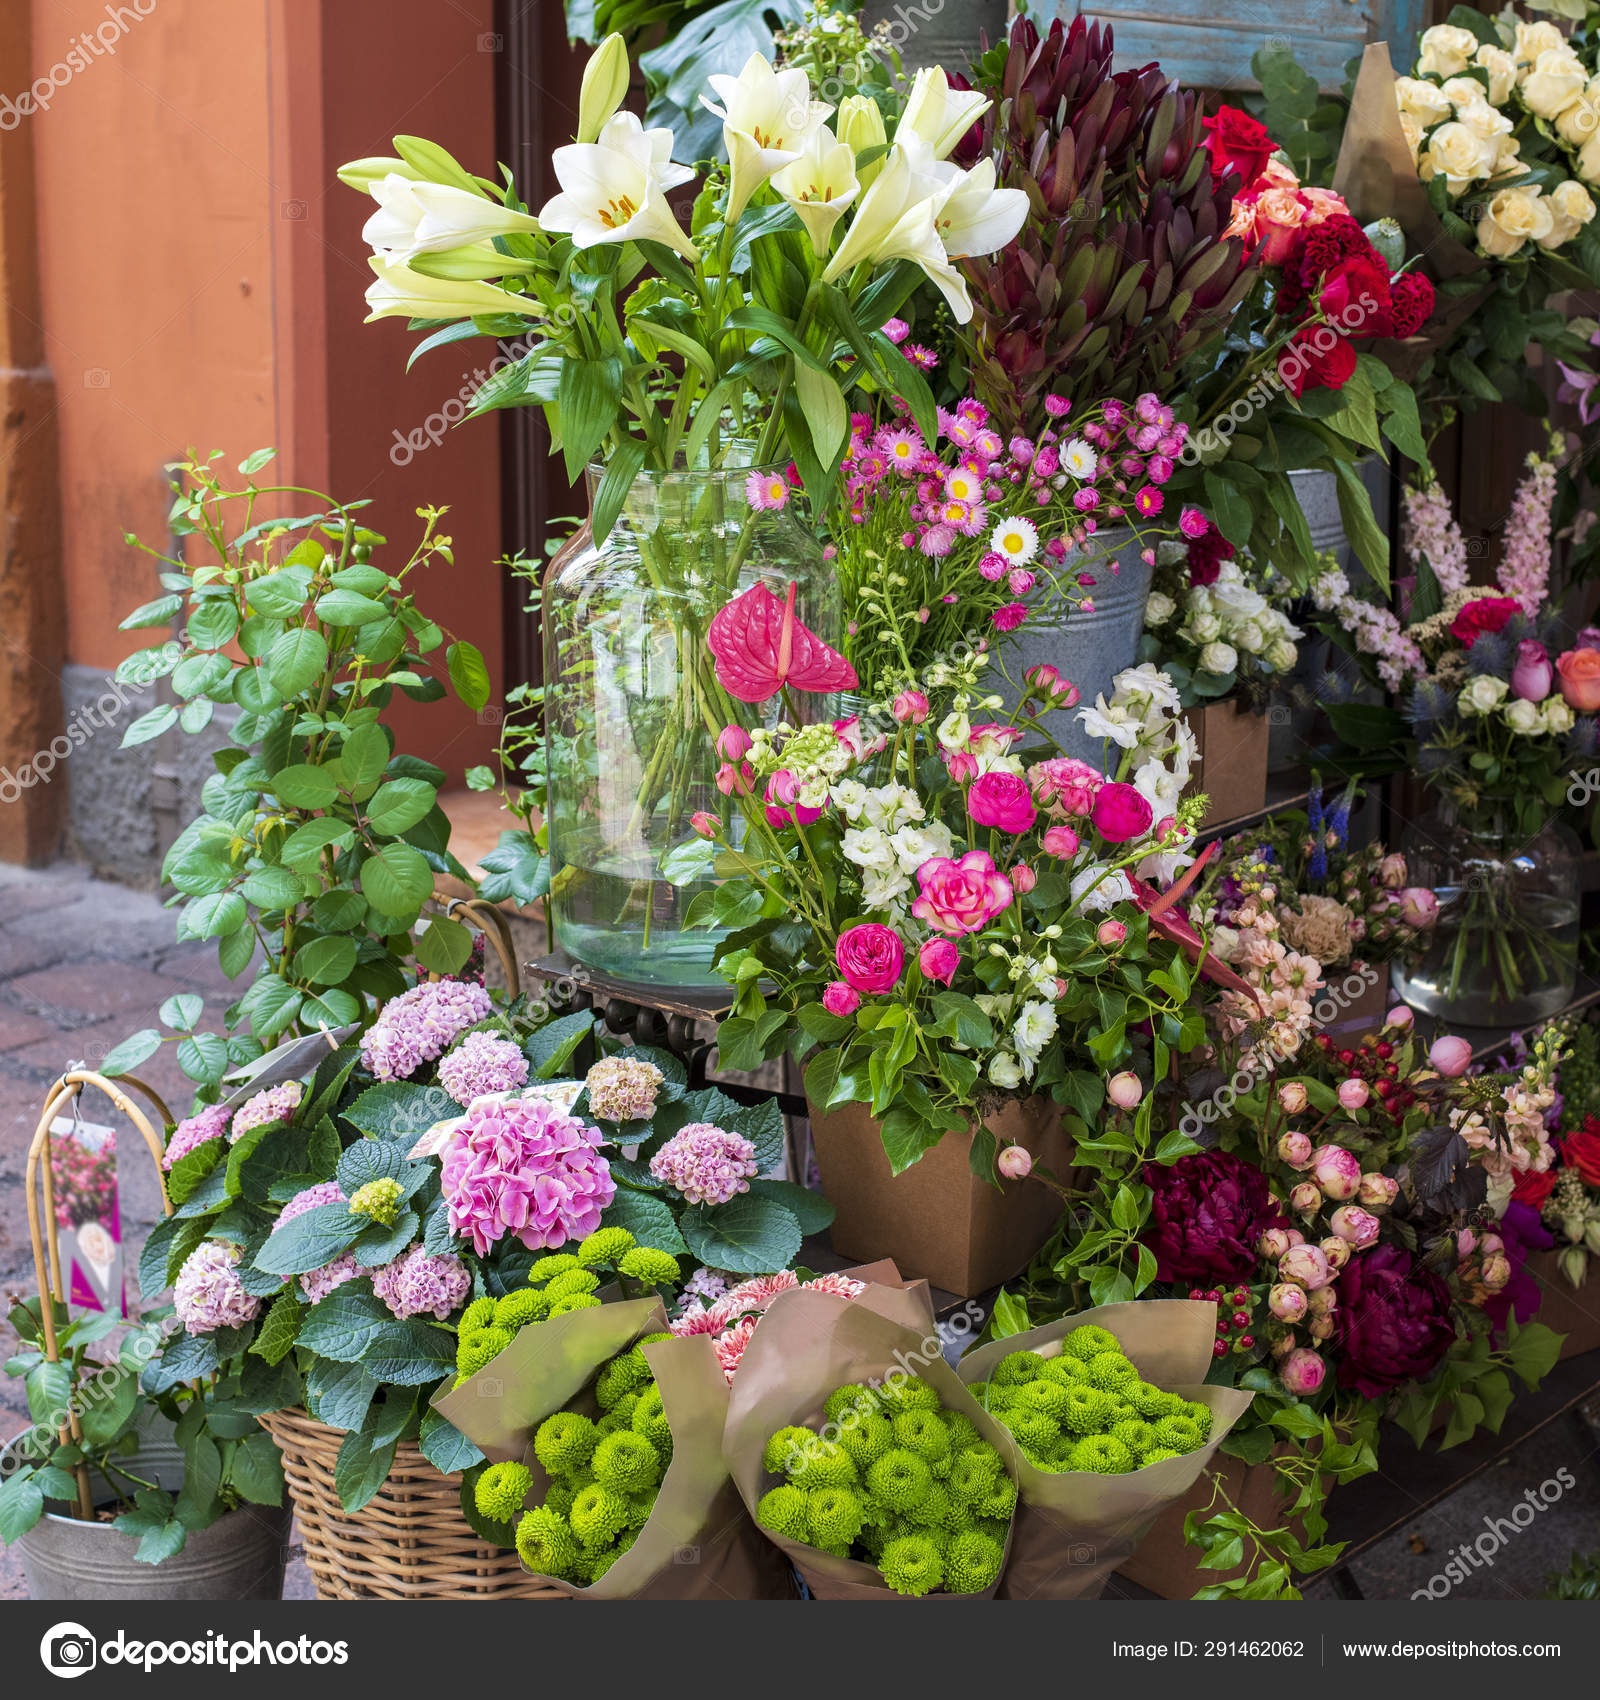 Variety Flowers Street Exhibition Flower Shop Italy Beautiful